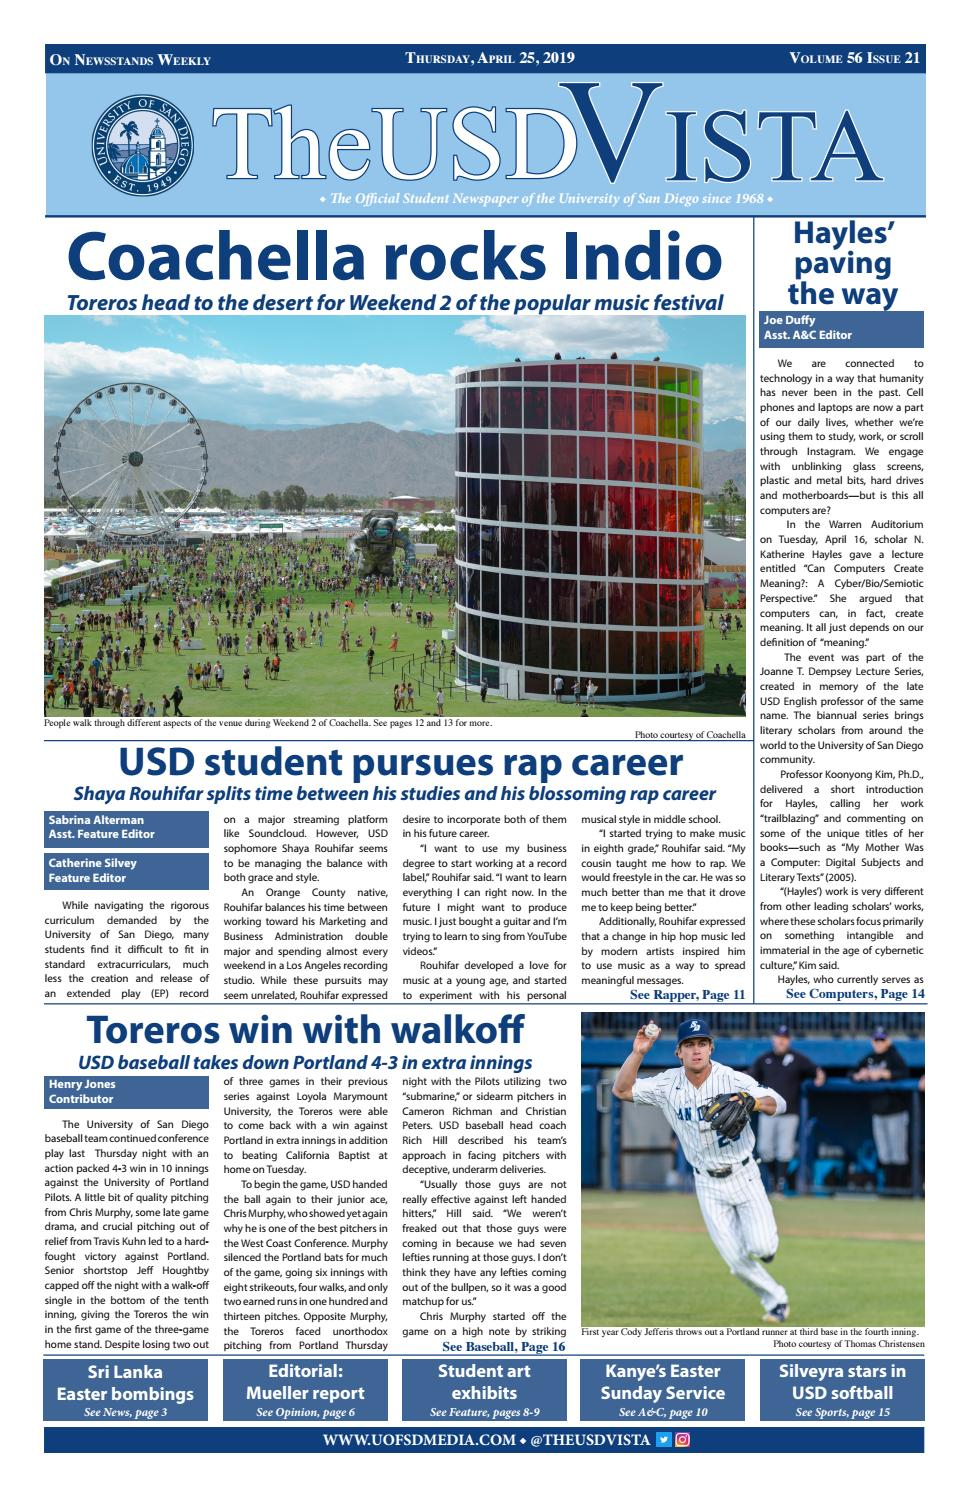 Volume 56, Issue 21 by The USD Vista - issuu